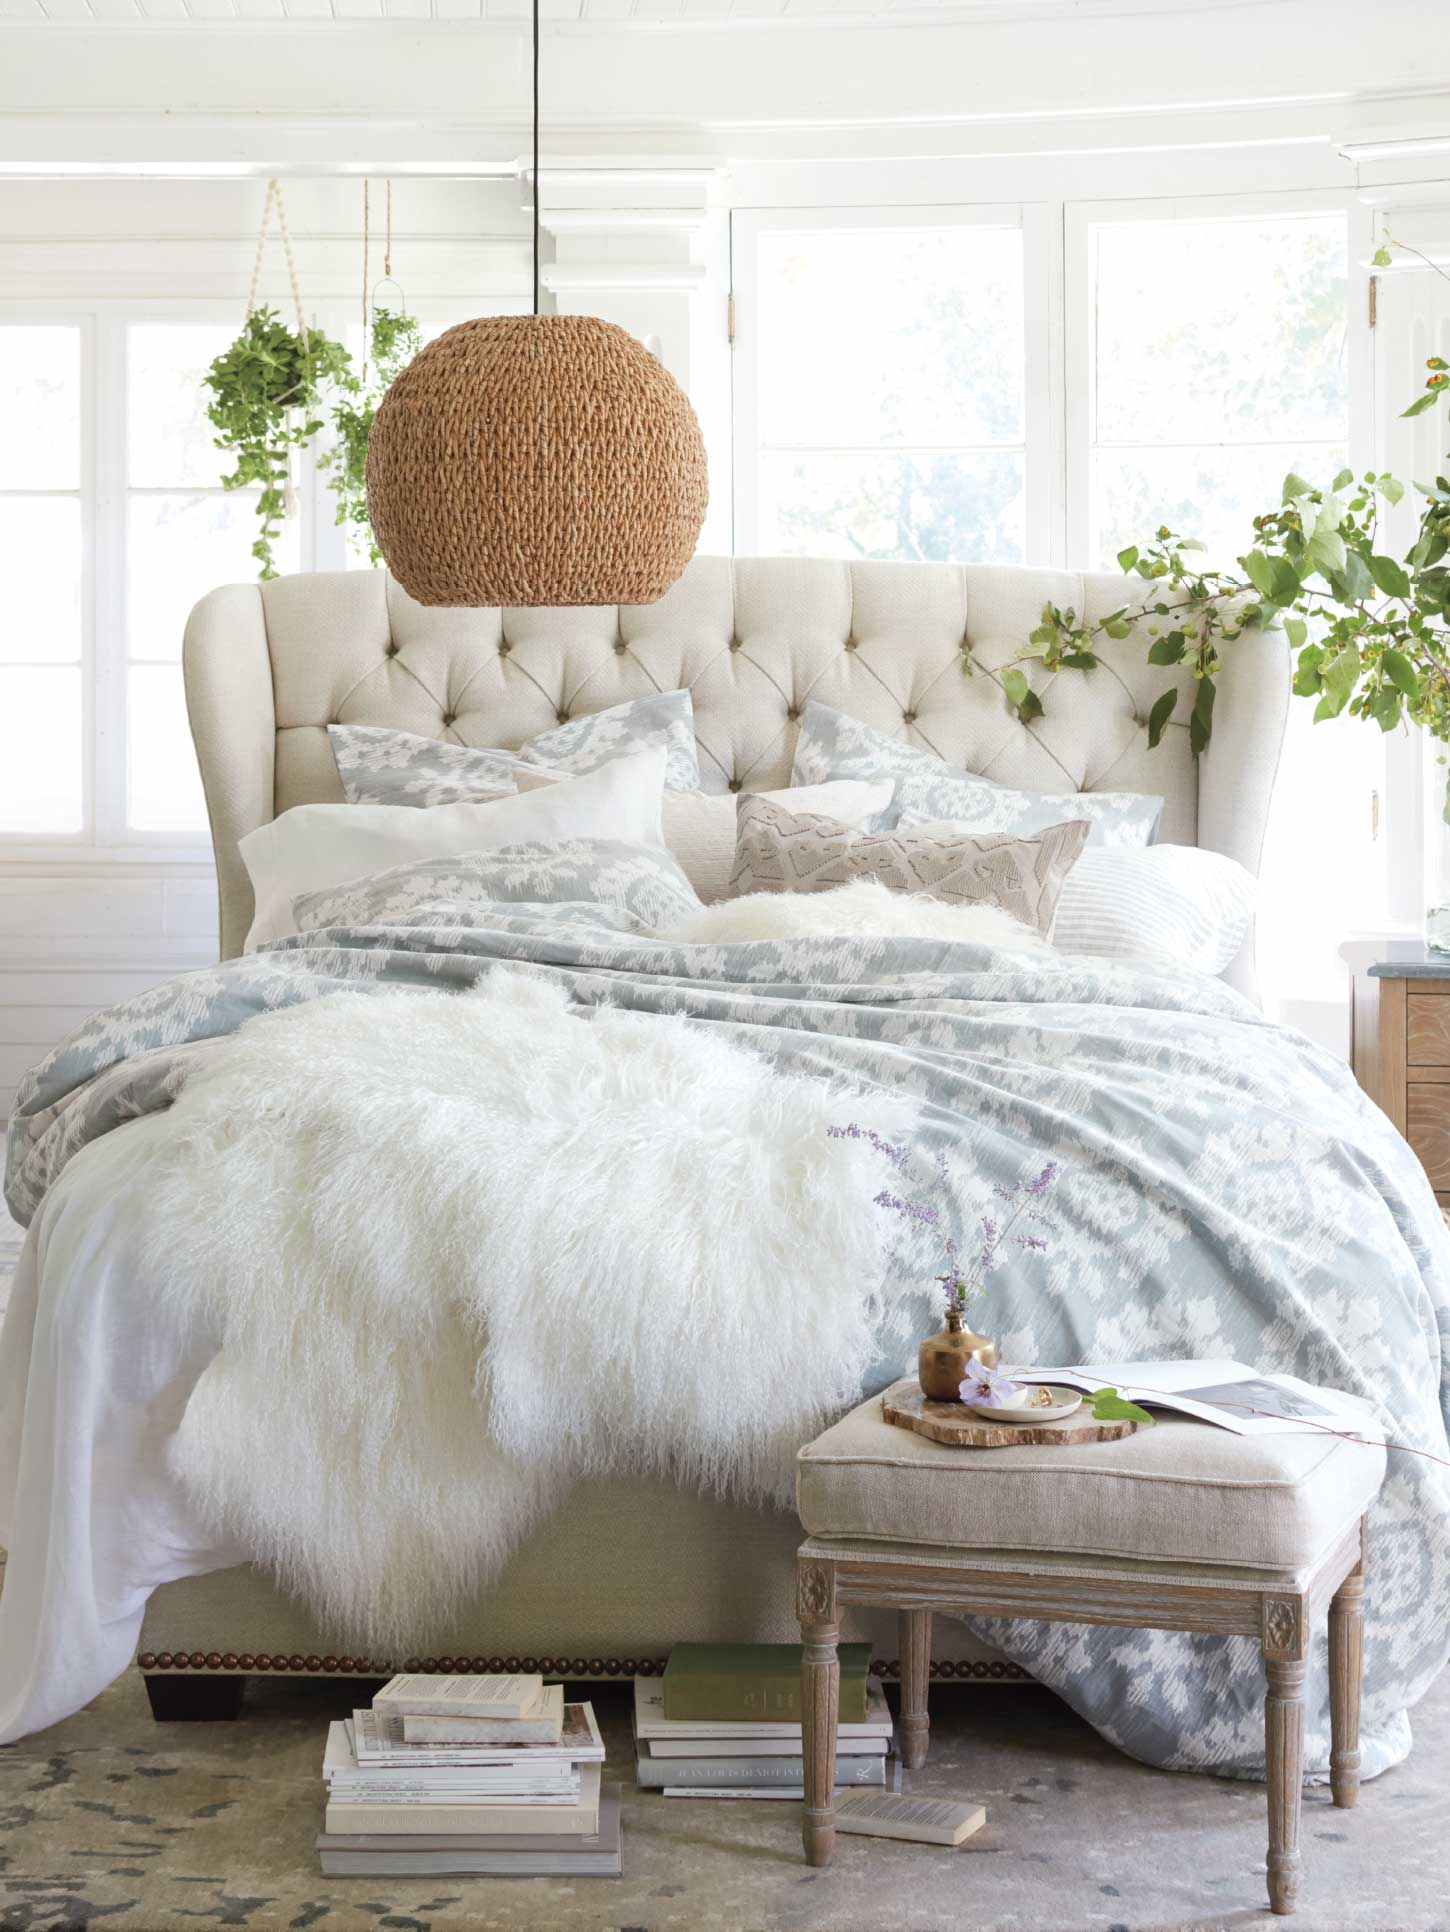 Arhaus Bed with Layers of Blankets